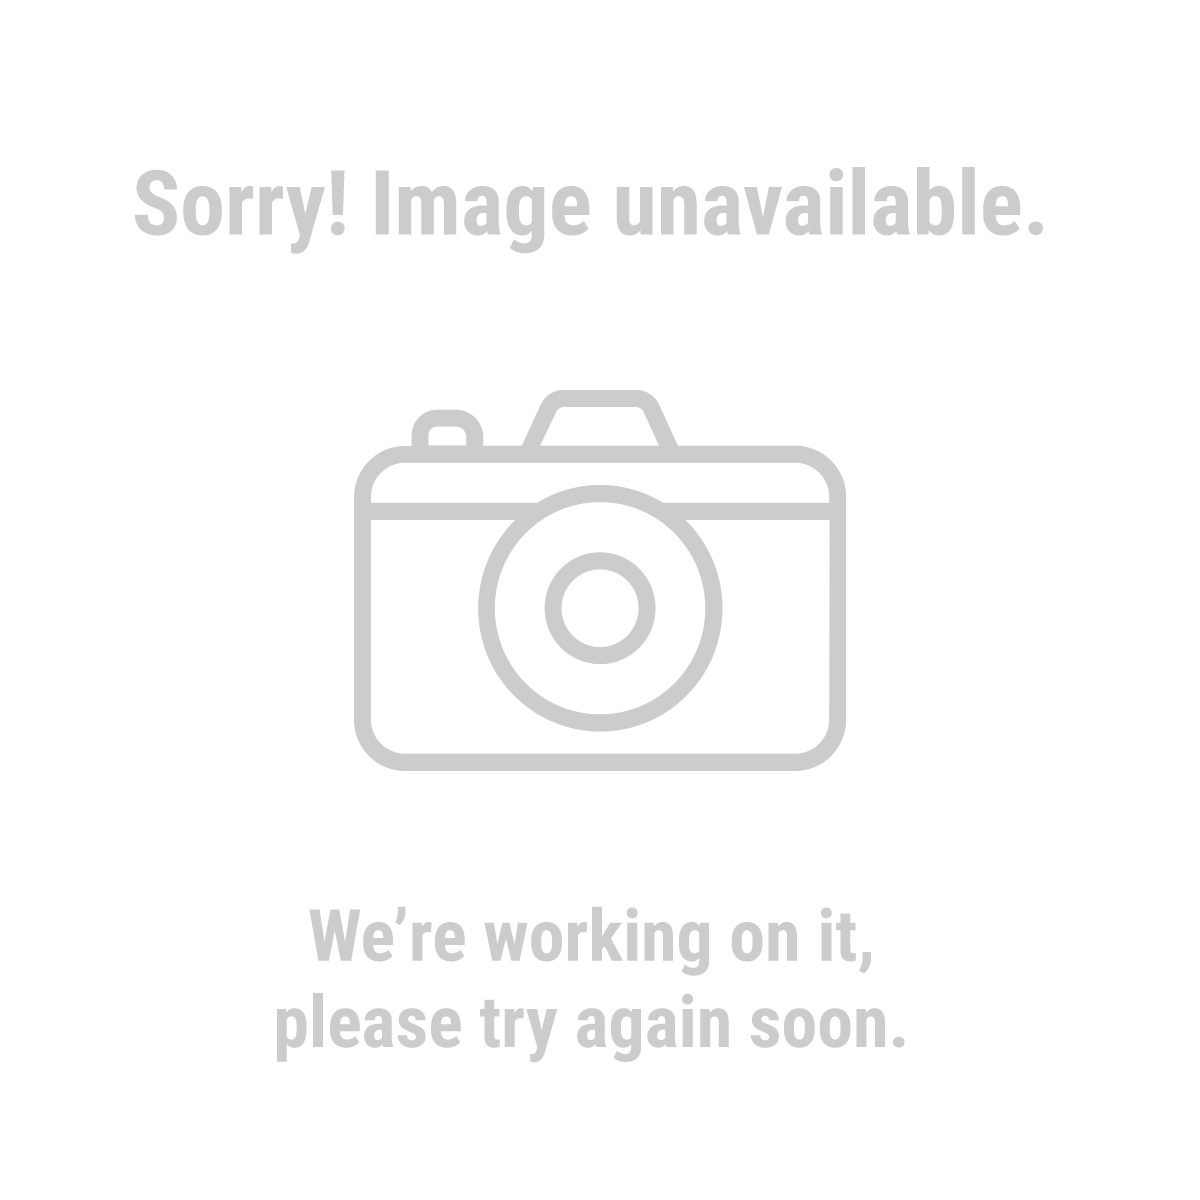 Lynxx 63287 40V Lithium 14 in. Cordless Chain Saw